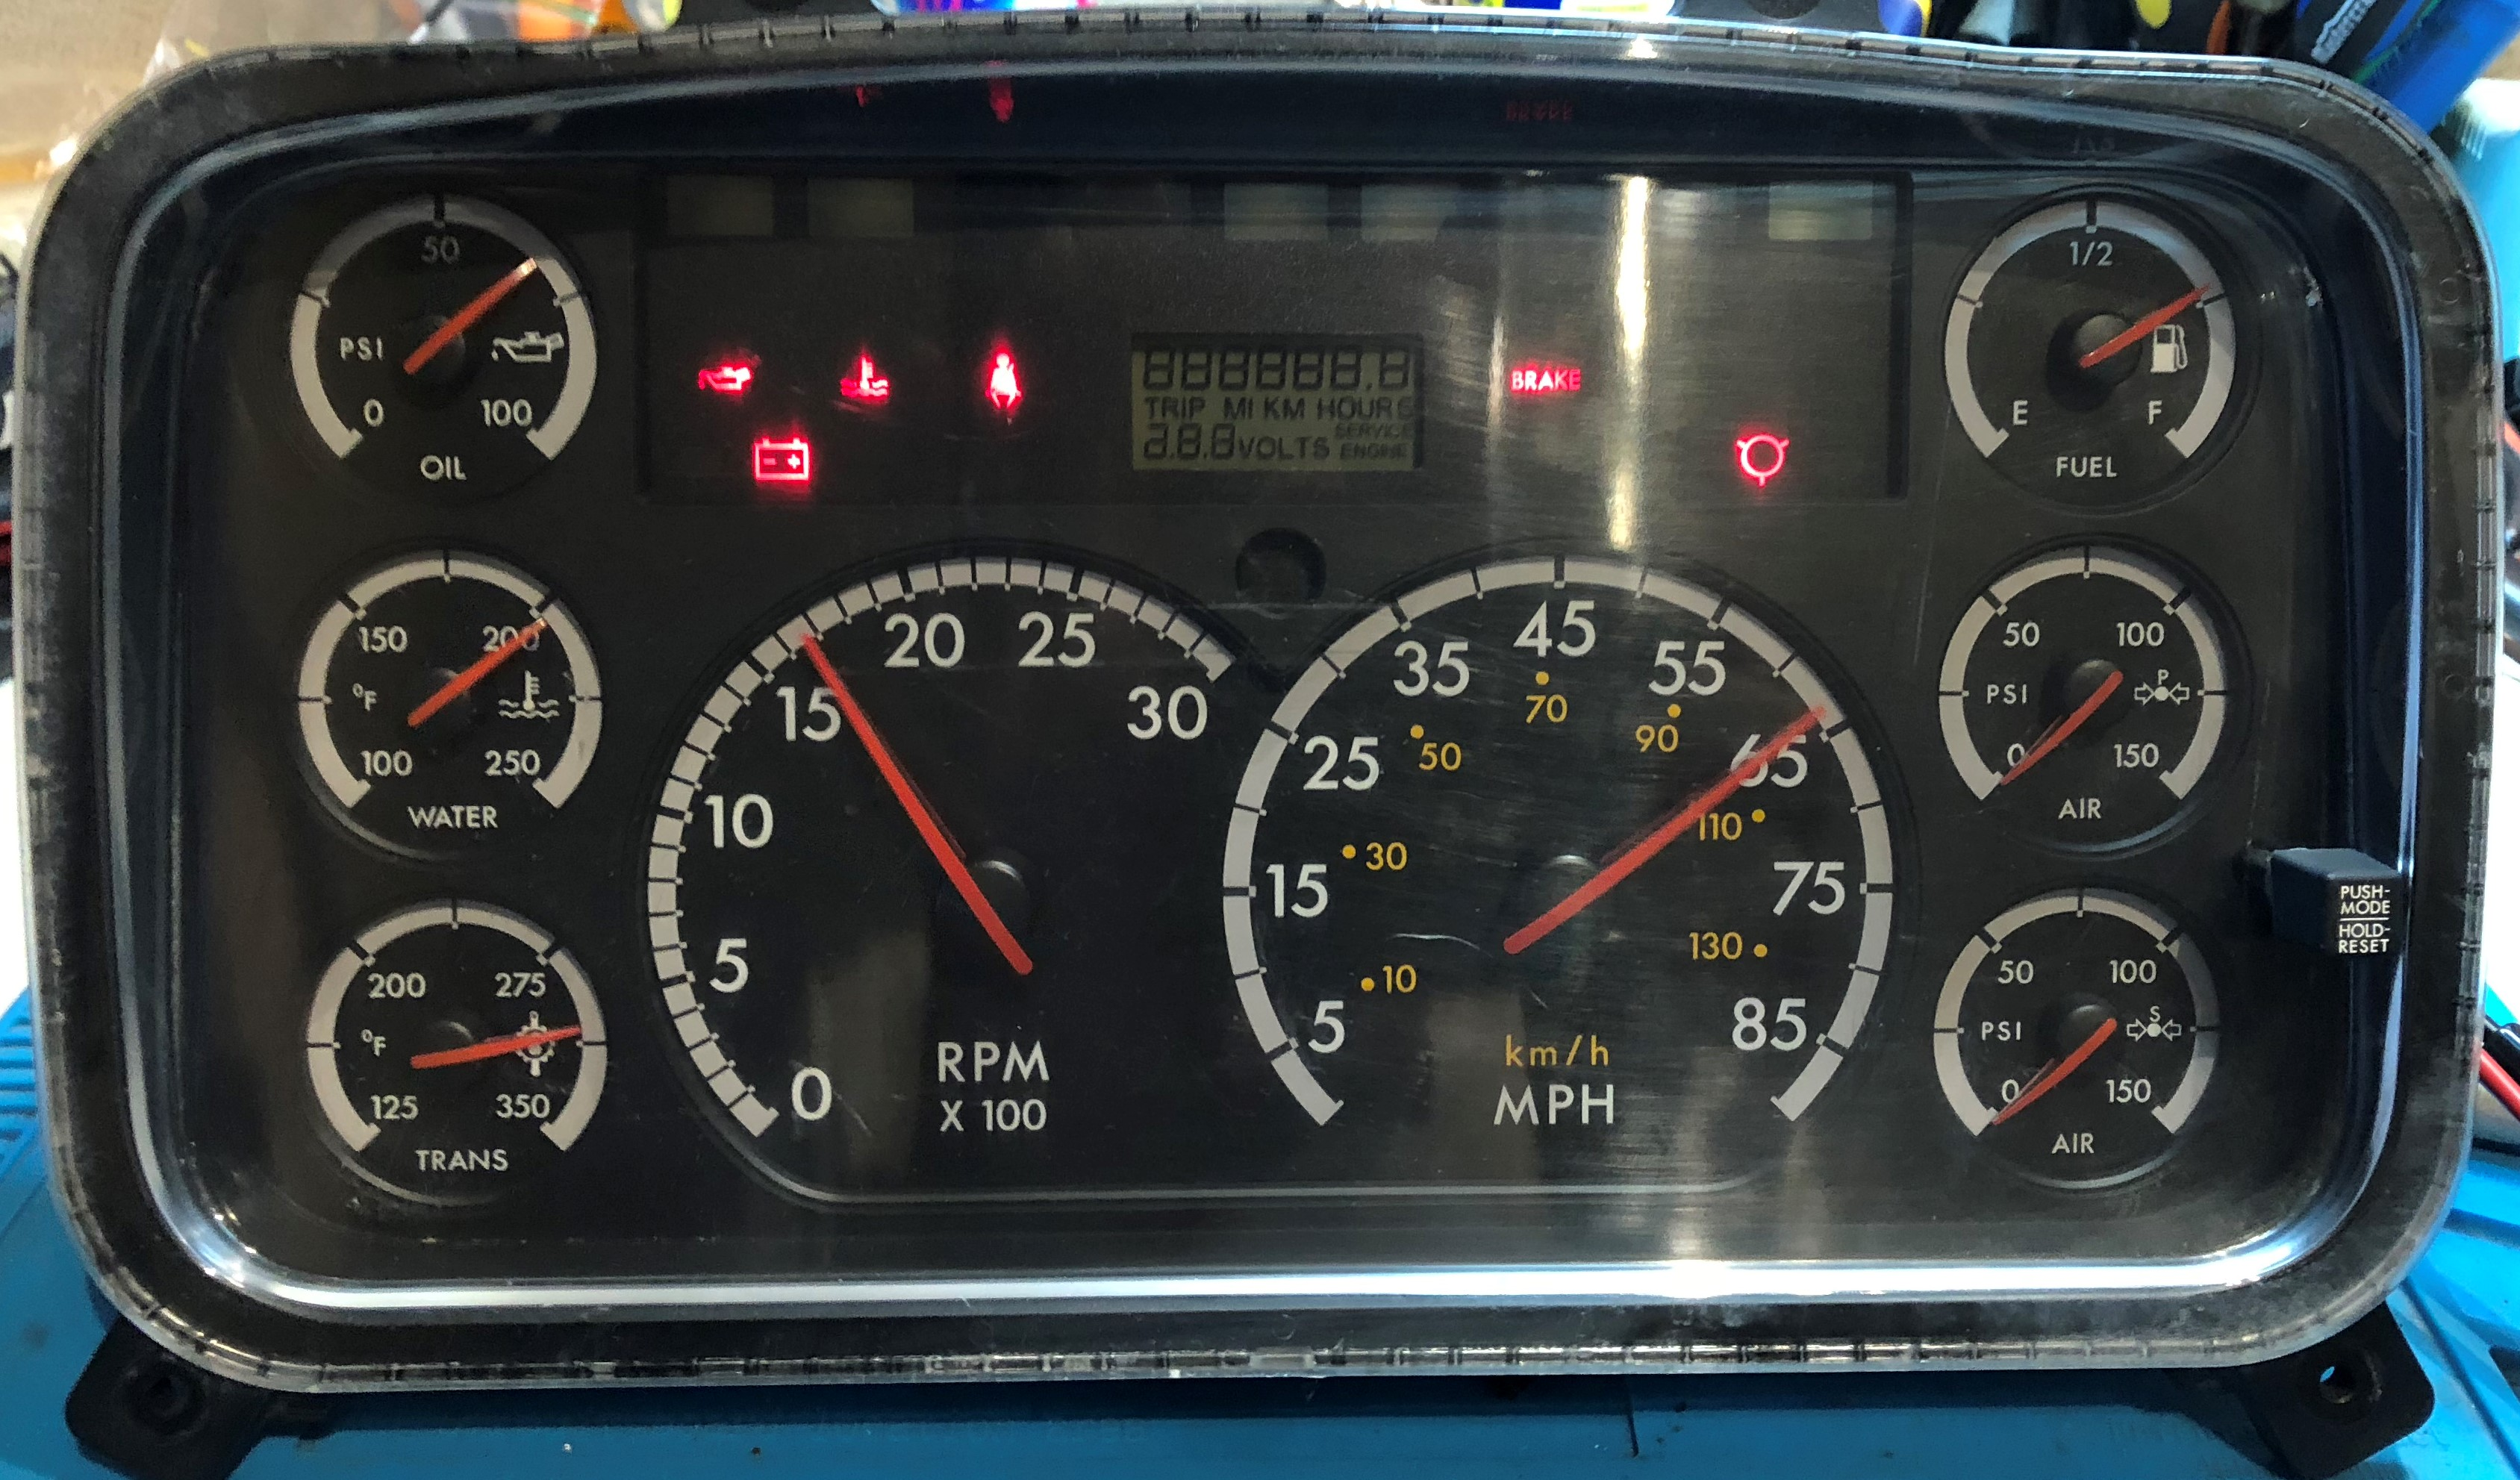 2004 FREIGHTLINER M2 USED DASHBOARD INSTRUMENT CLUSTER FOR SALE (MPH)